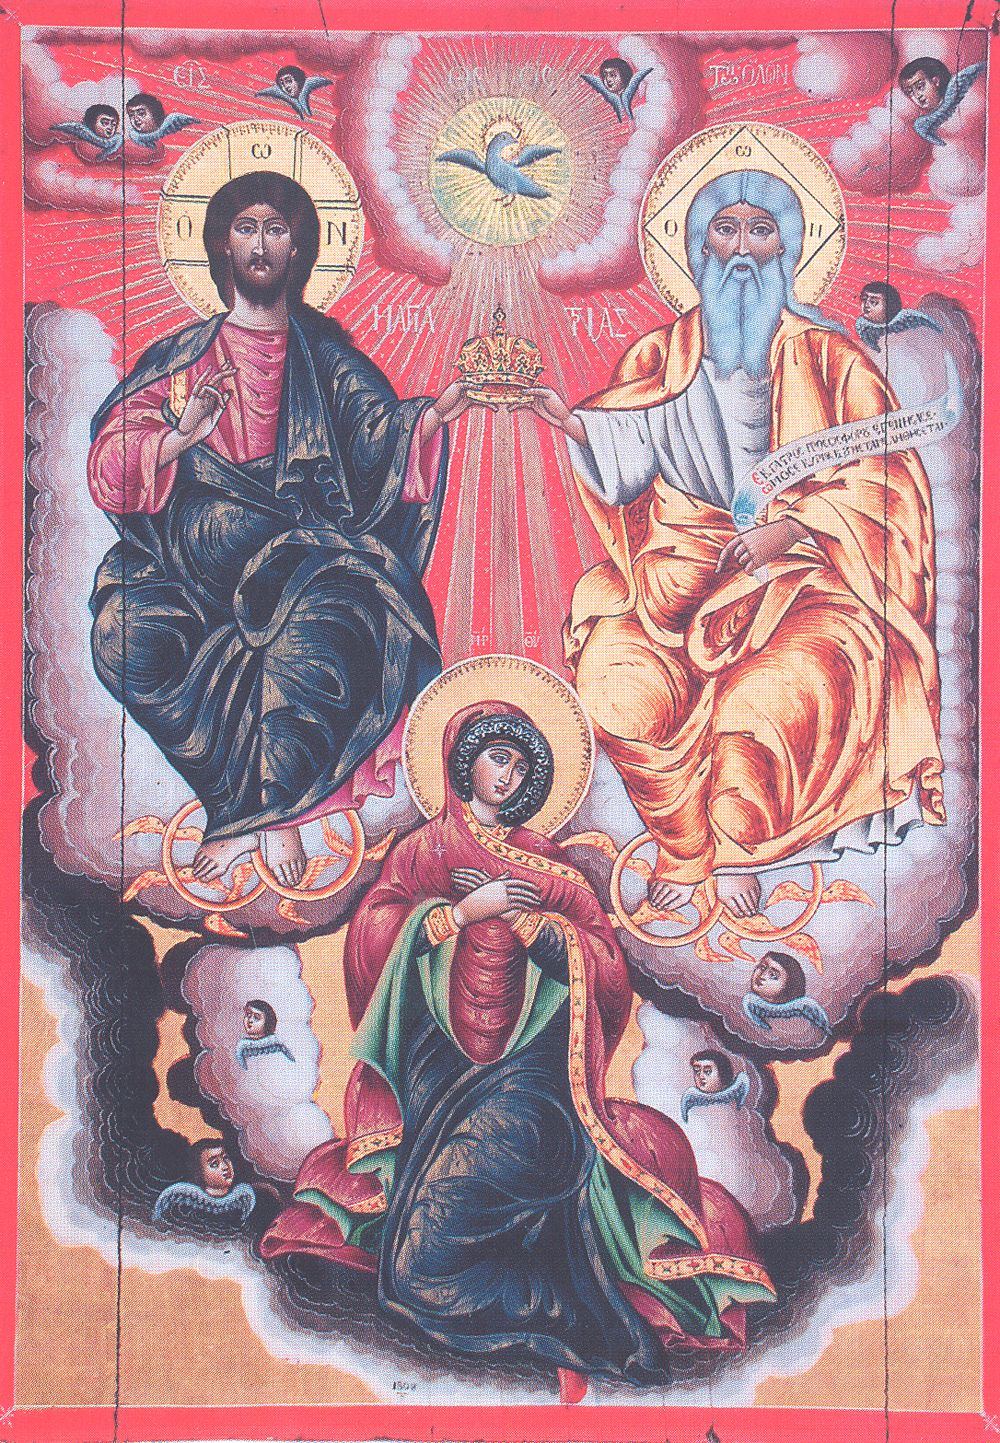 Greek Orthodox icon of the Coronation of the Virgin Mary known as Η στέψη της Θεοτόκου